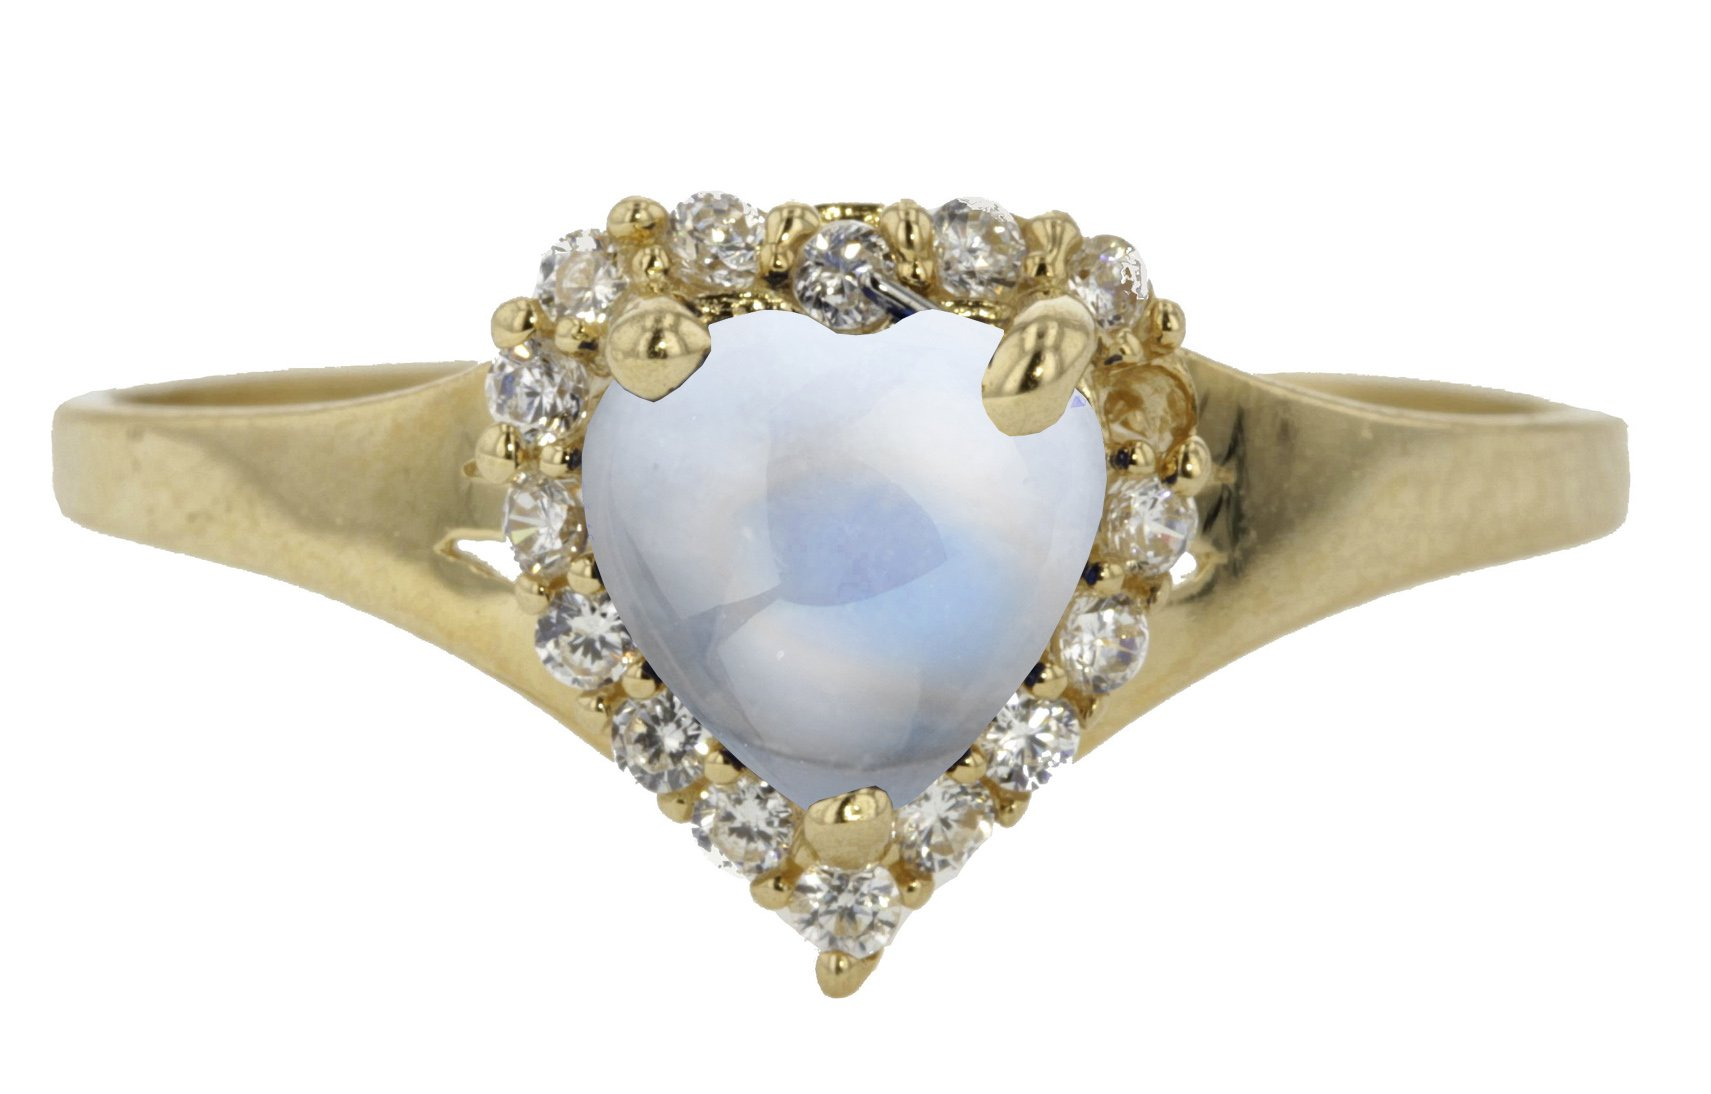 10k Yellow Gold Cabochon Natural Genuine White Moonstone Heart Halo Promise Ring Size 8 by Sac Silver